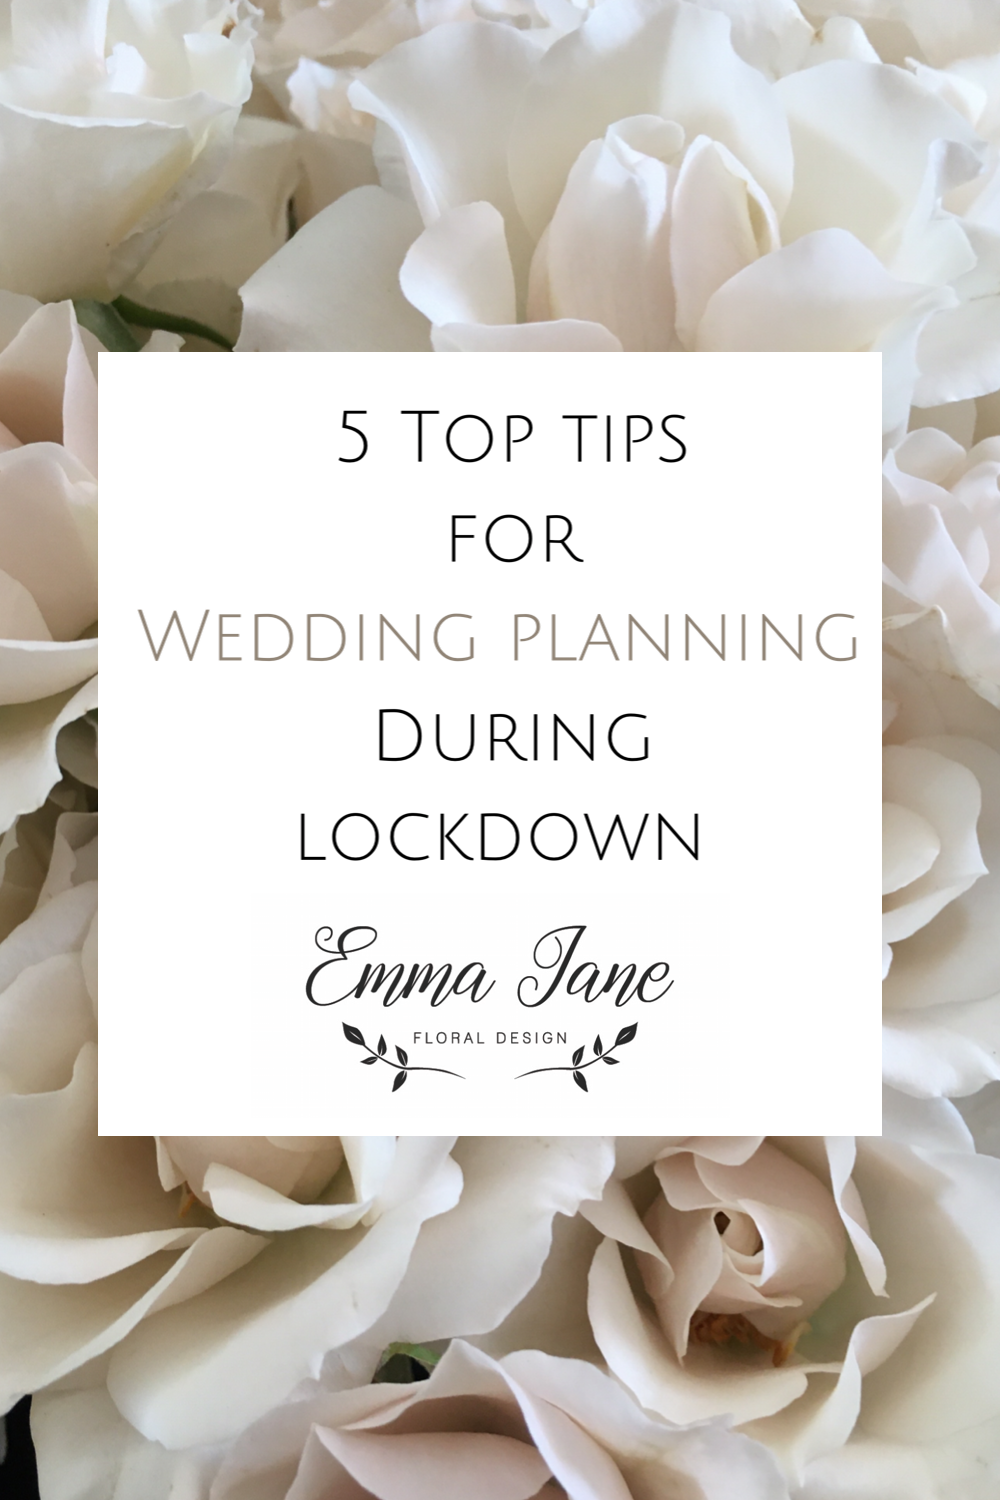 Emma Jane Floral Design gives 5 top tips for wedding planning during the Covid-19 lockdown